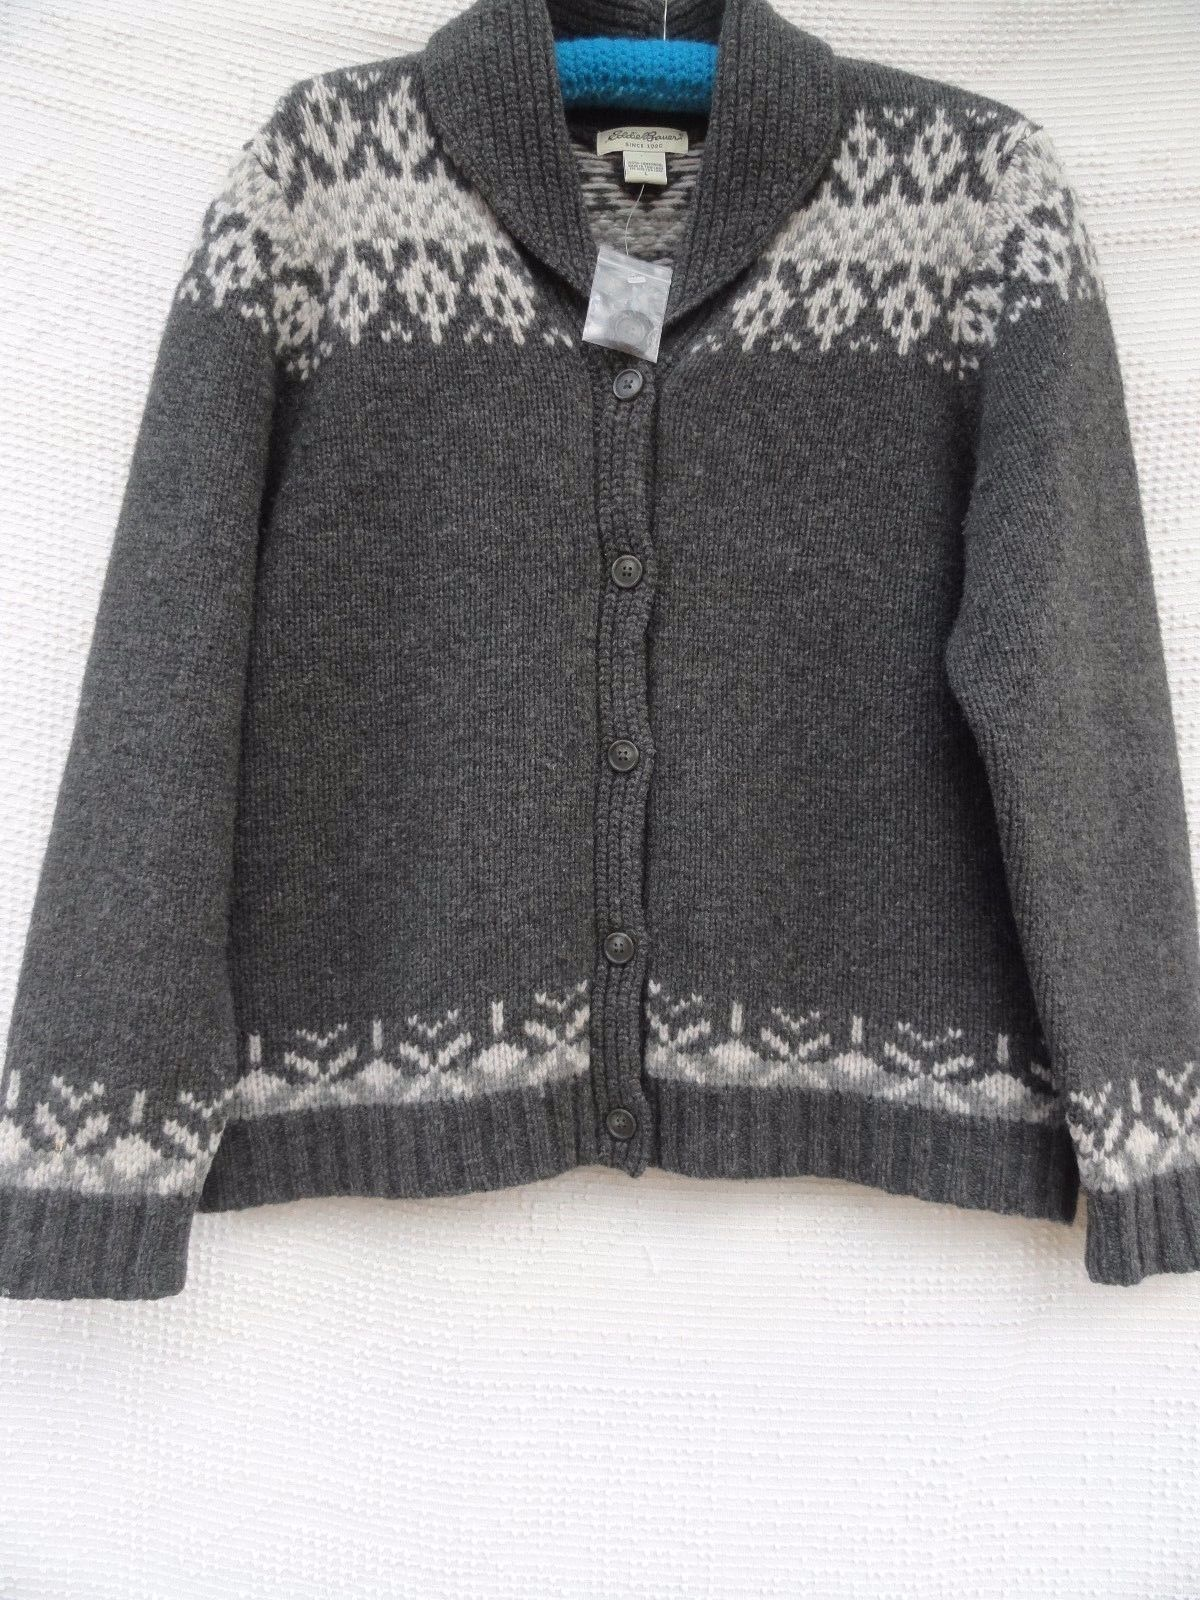 Eddie Bauer New Wool Cardigan Sweater Misses L Gray 100 Lambswool ...